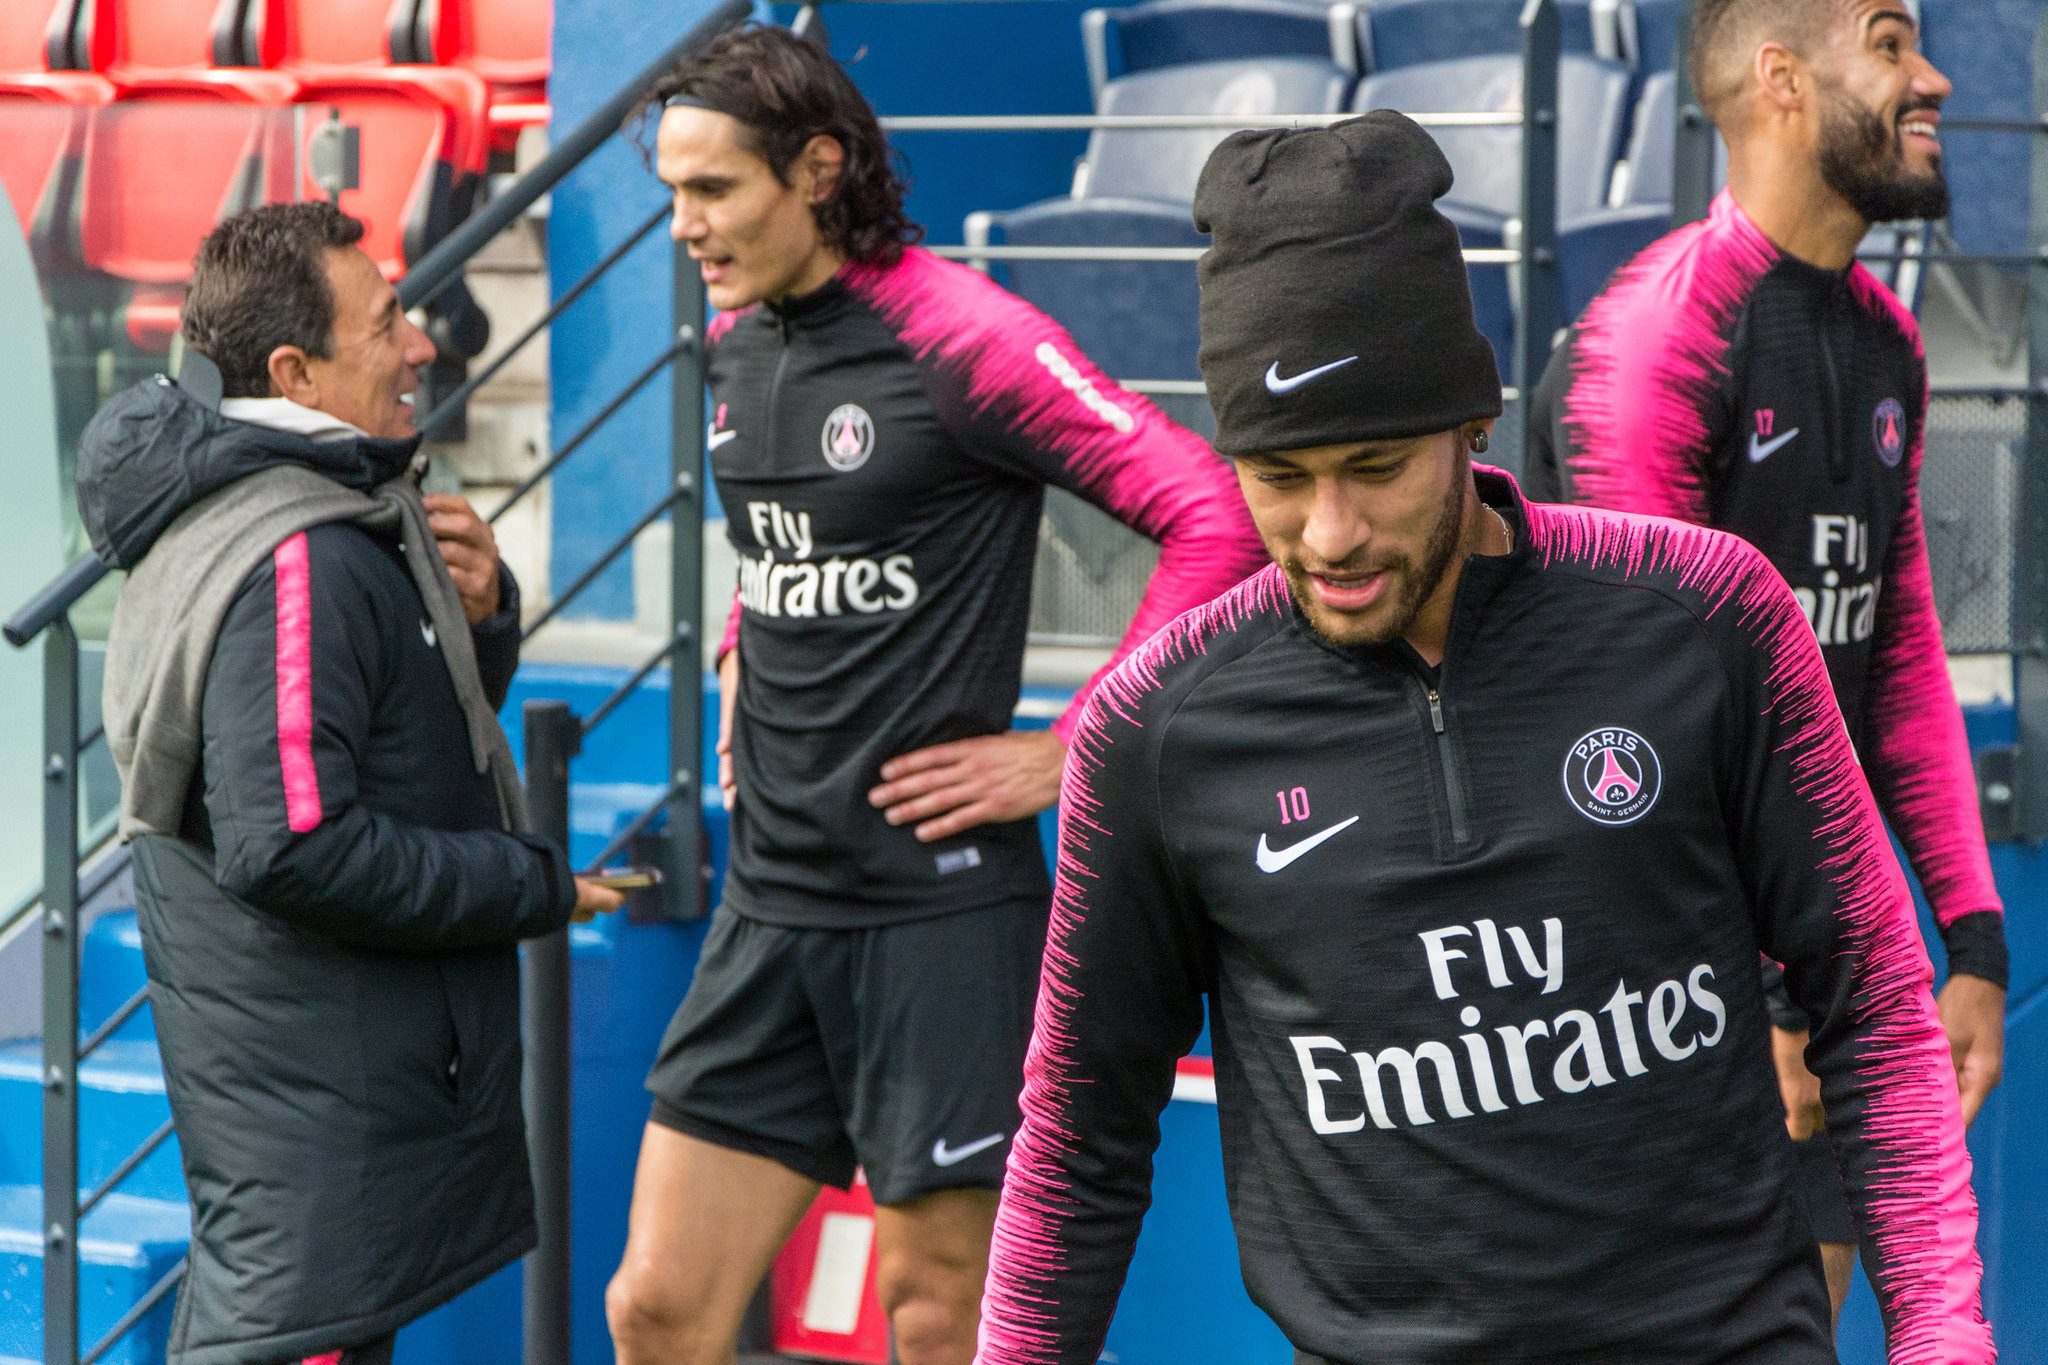 PSG lift another treble after beating Lyon in League Cup final